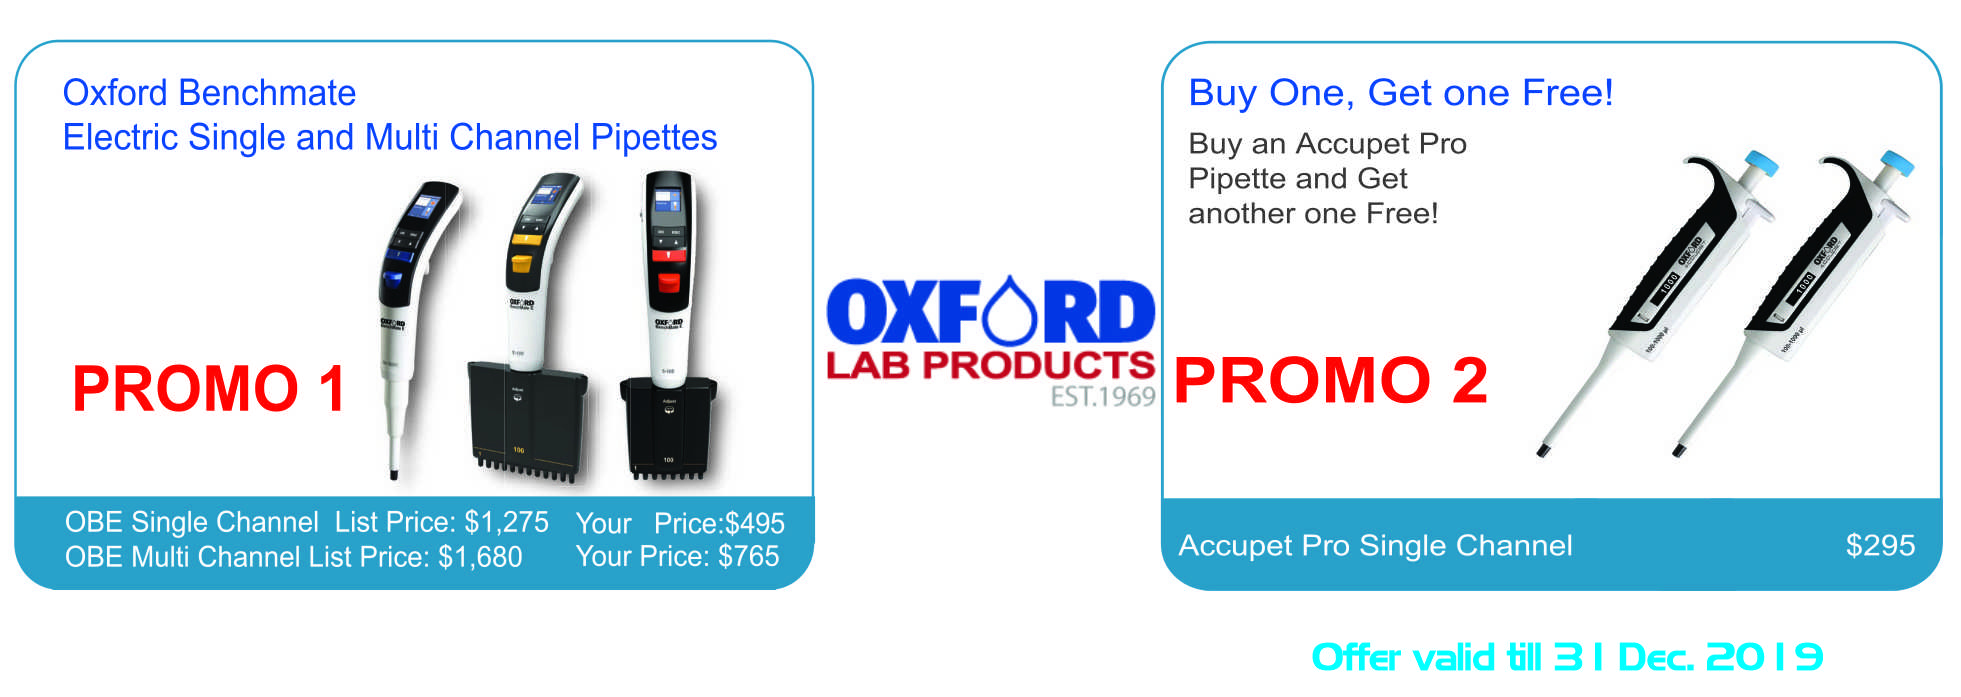 Oxford Benchmate Electric Single and Multi Channel Pipettes